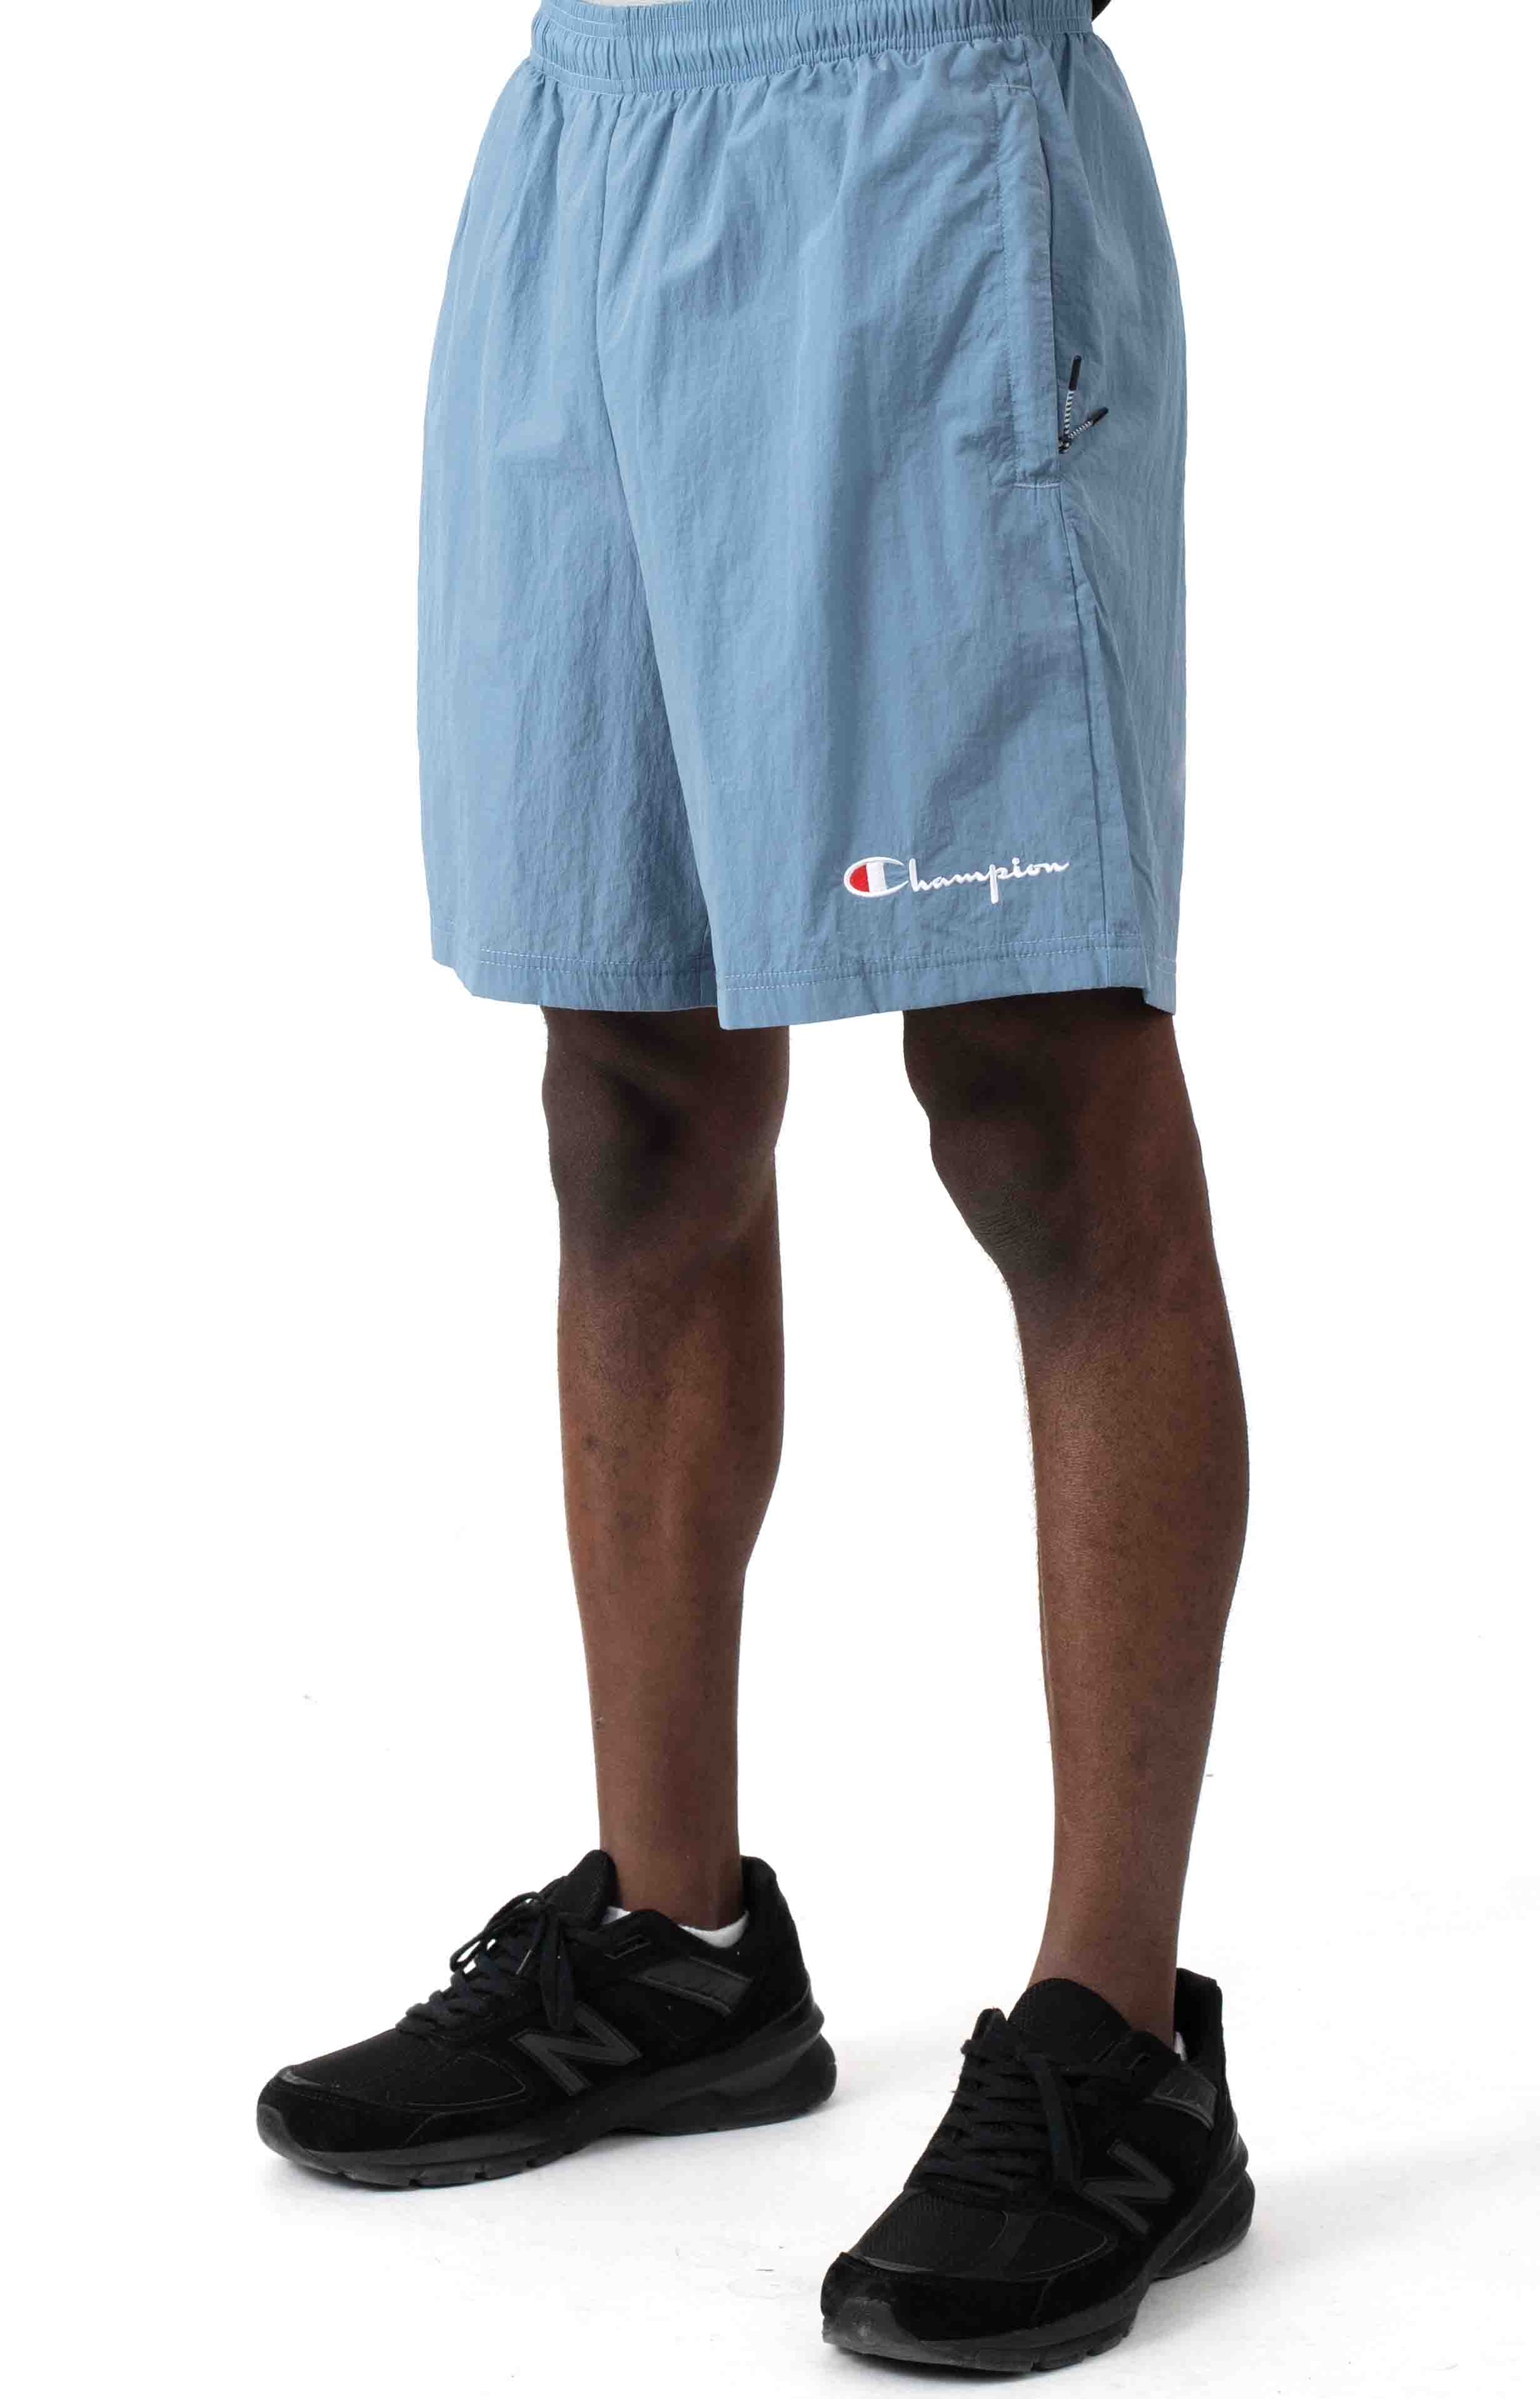 6-Inch Nylon Warm Up Shorts - Wildflower Pale Blue  1